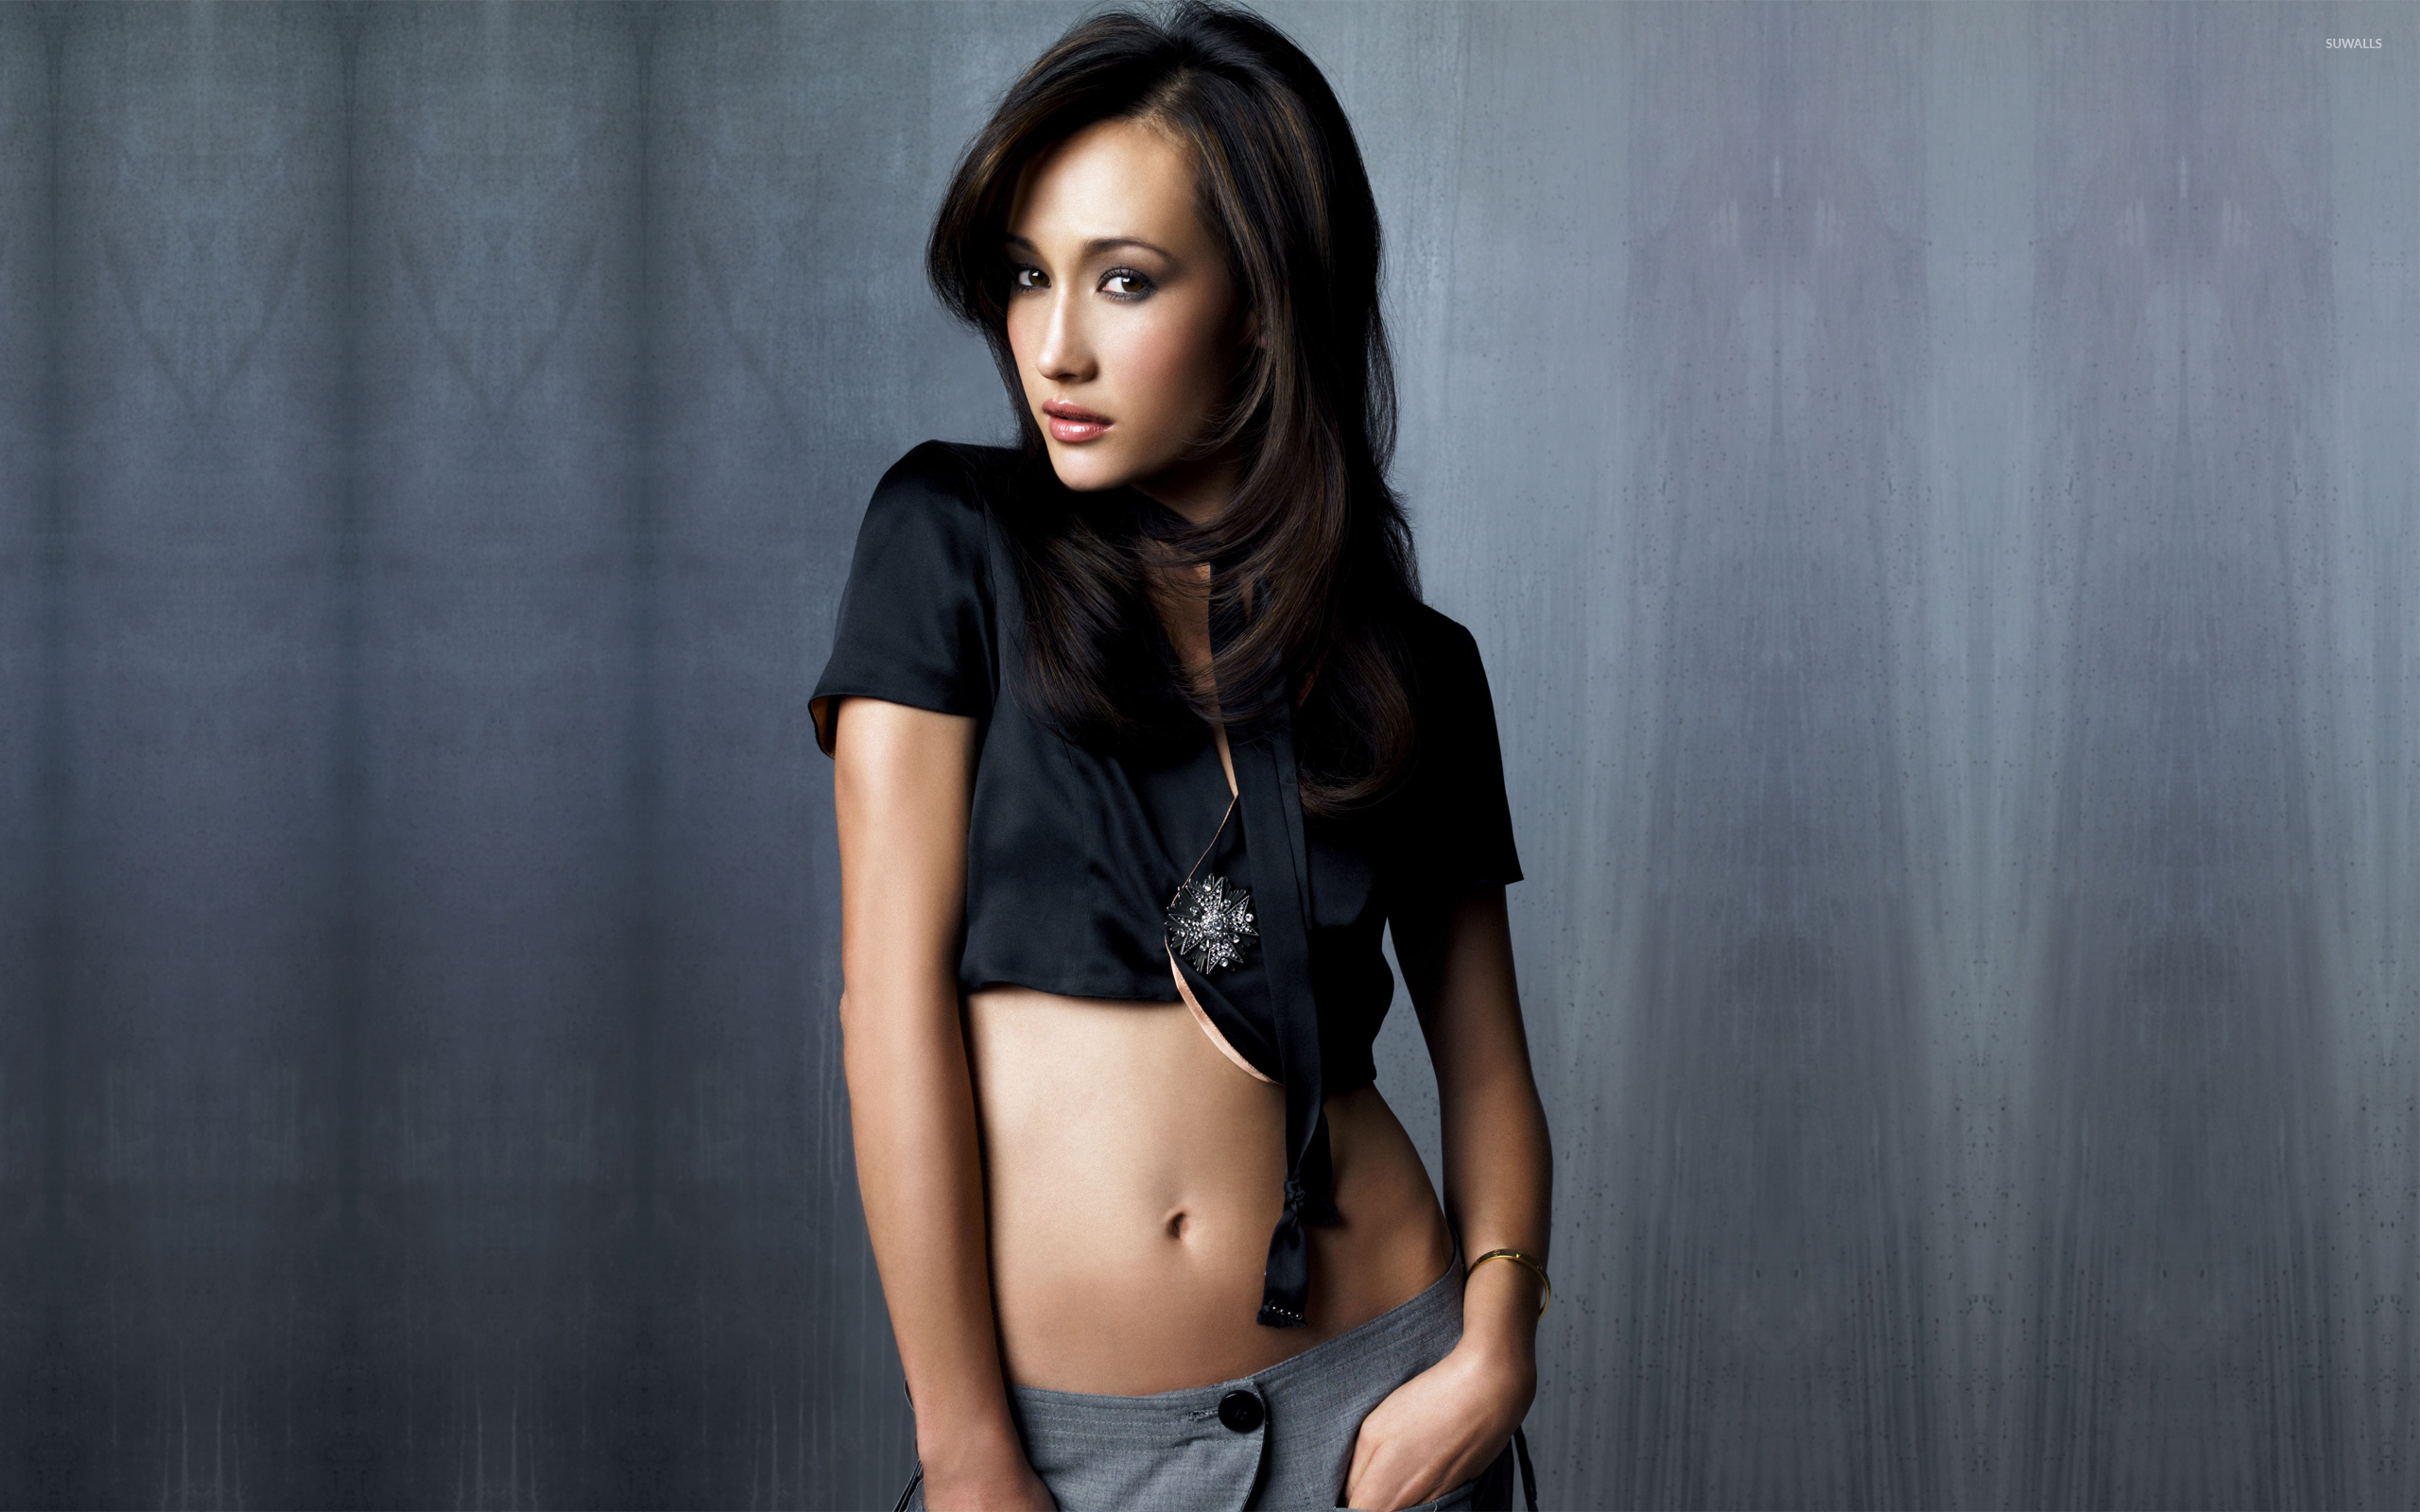 2560x1600 - Maggie Q Wallpapers 3